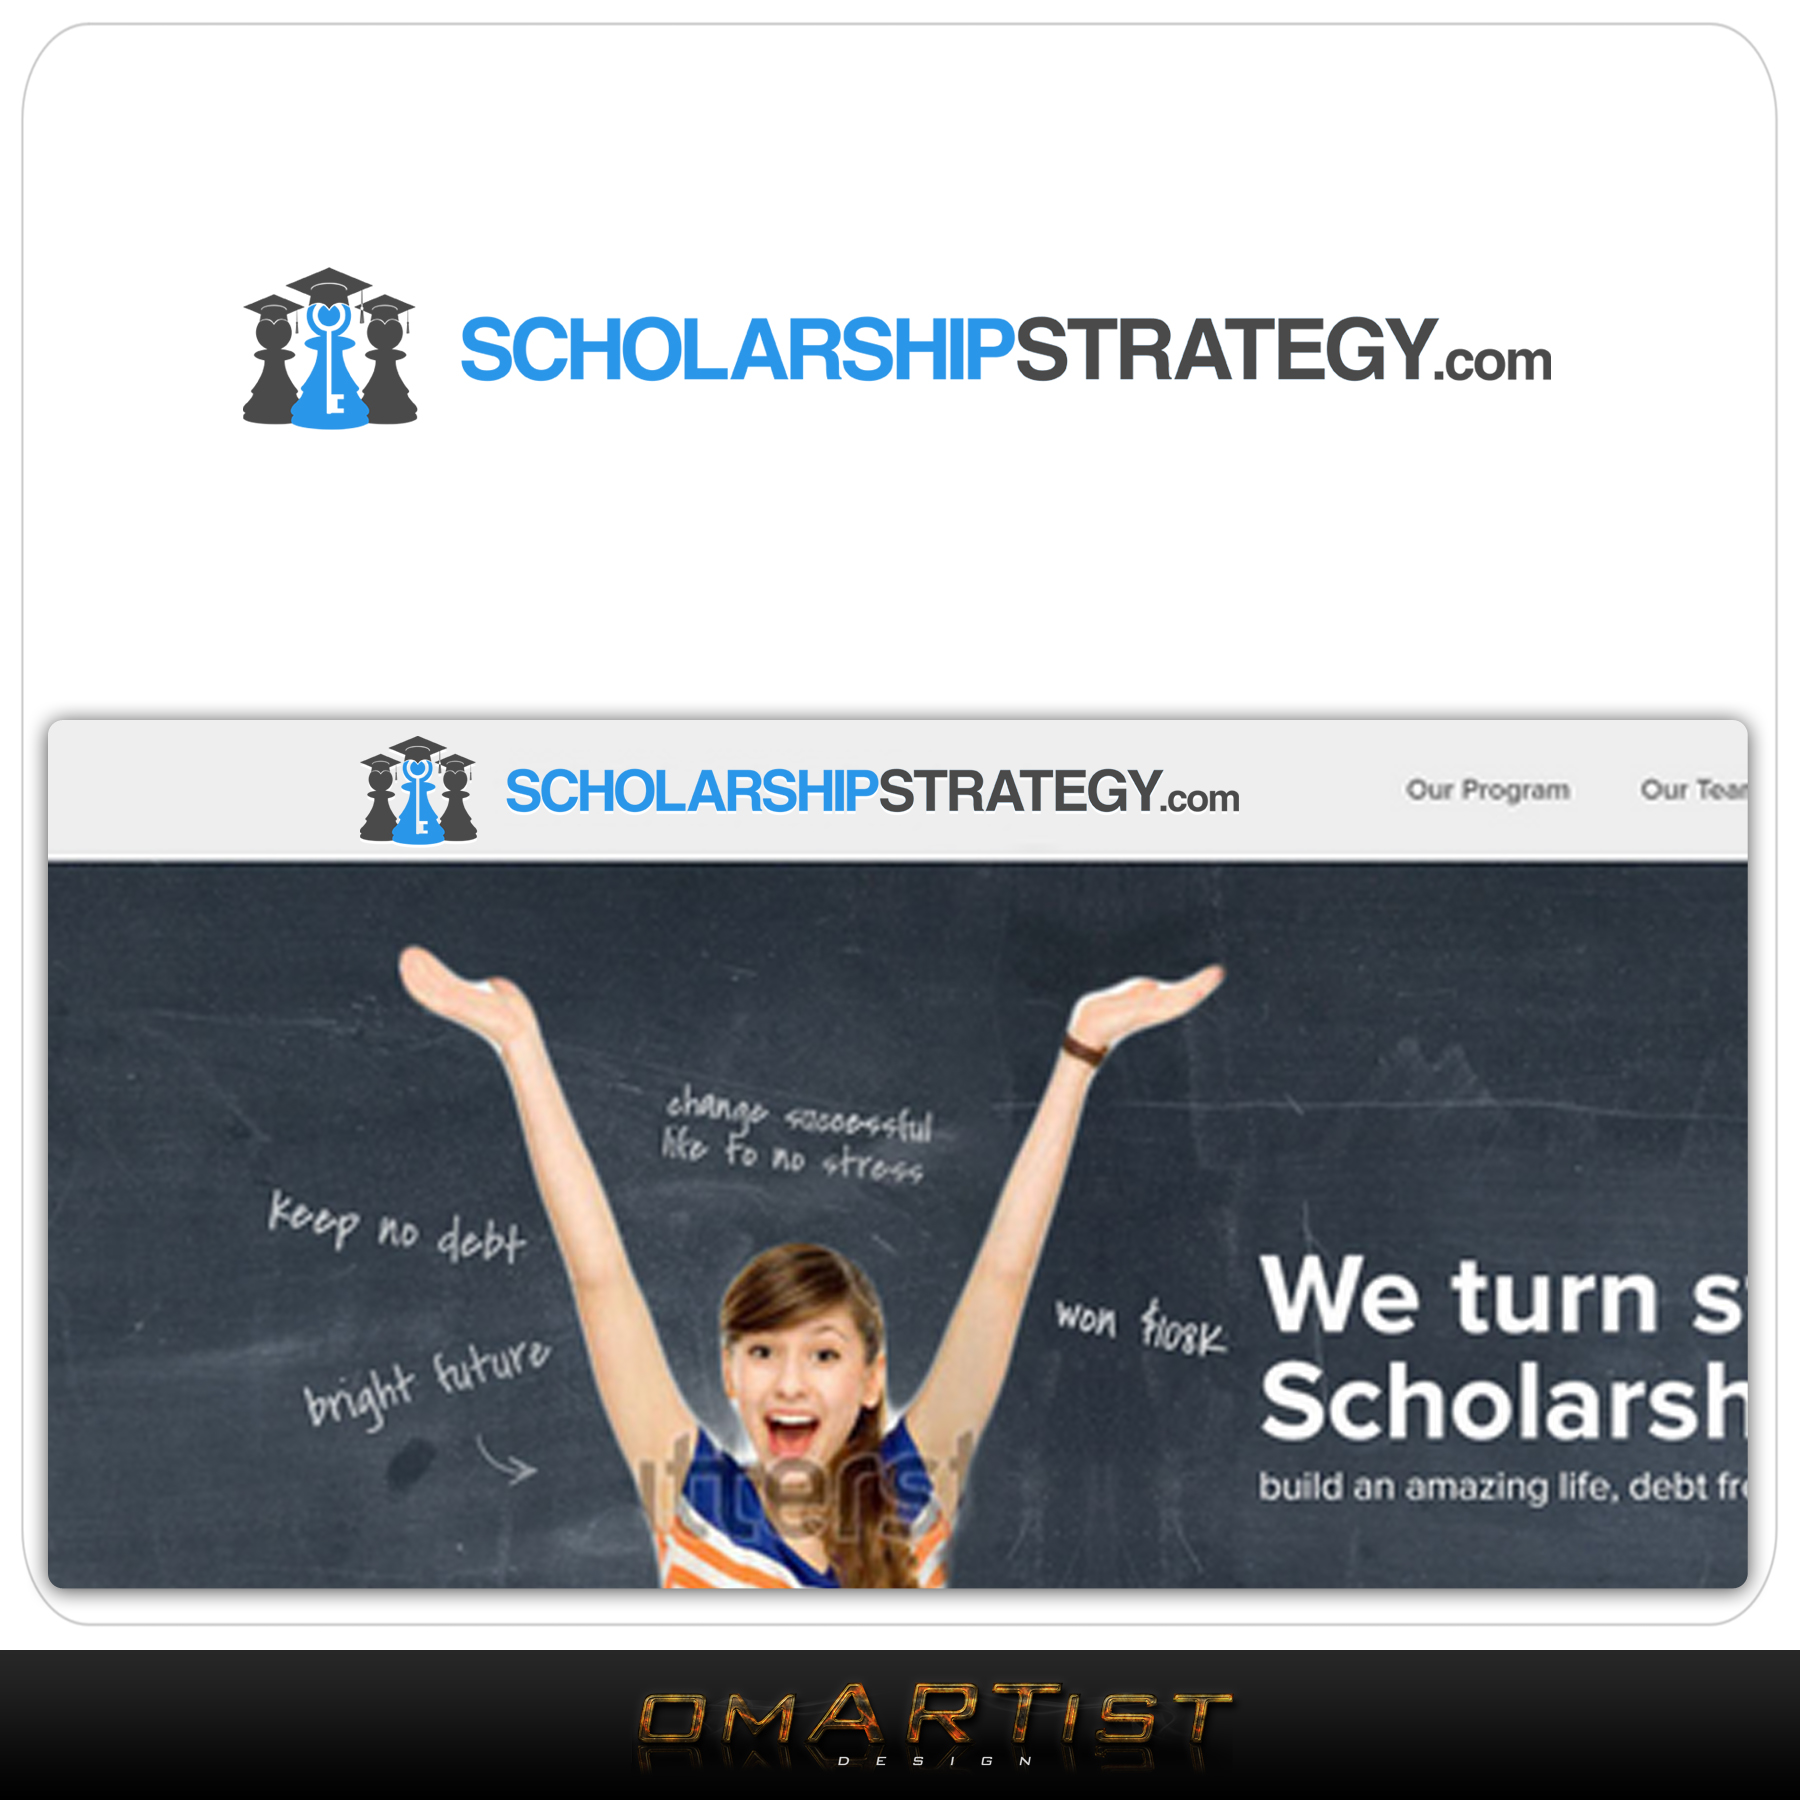 Logo Design by omARTist - Entry No. 190 in the Logo Design Contest Captivating Logo Design for Scholarshipstrategy.com.